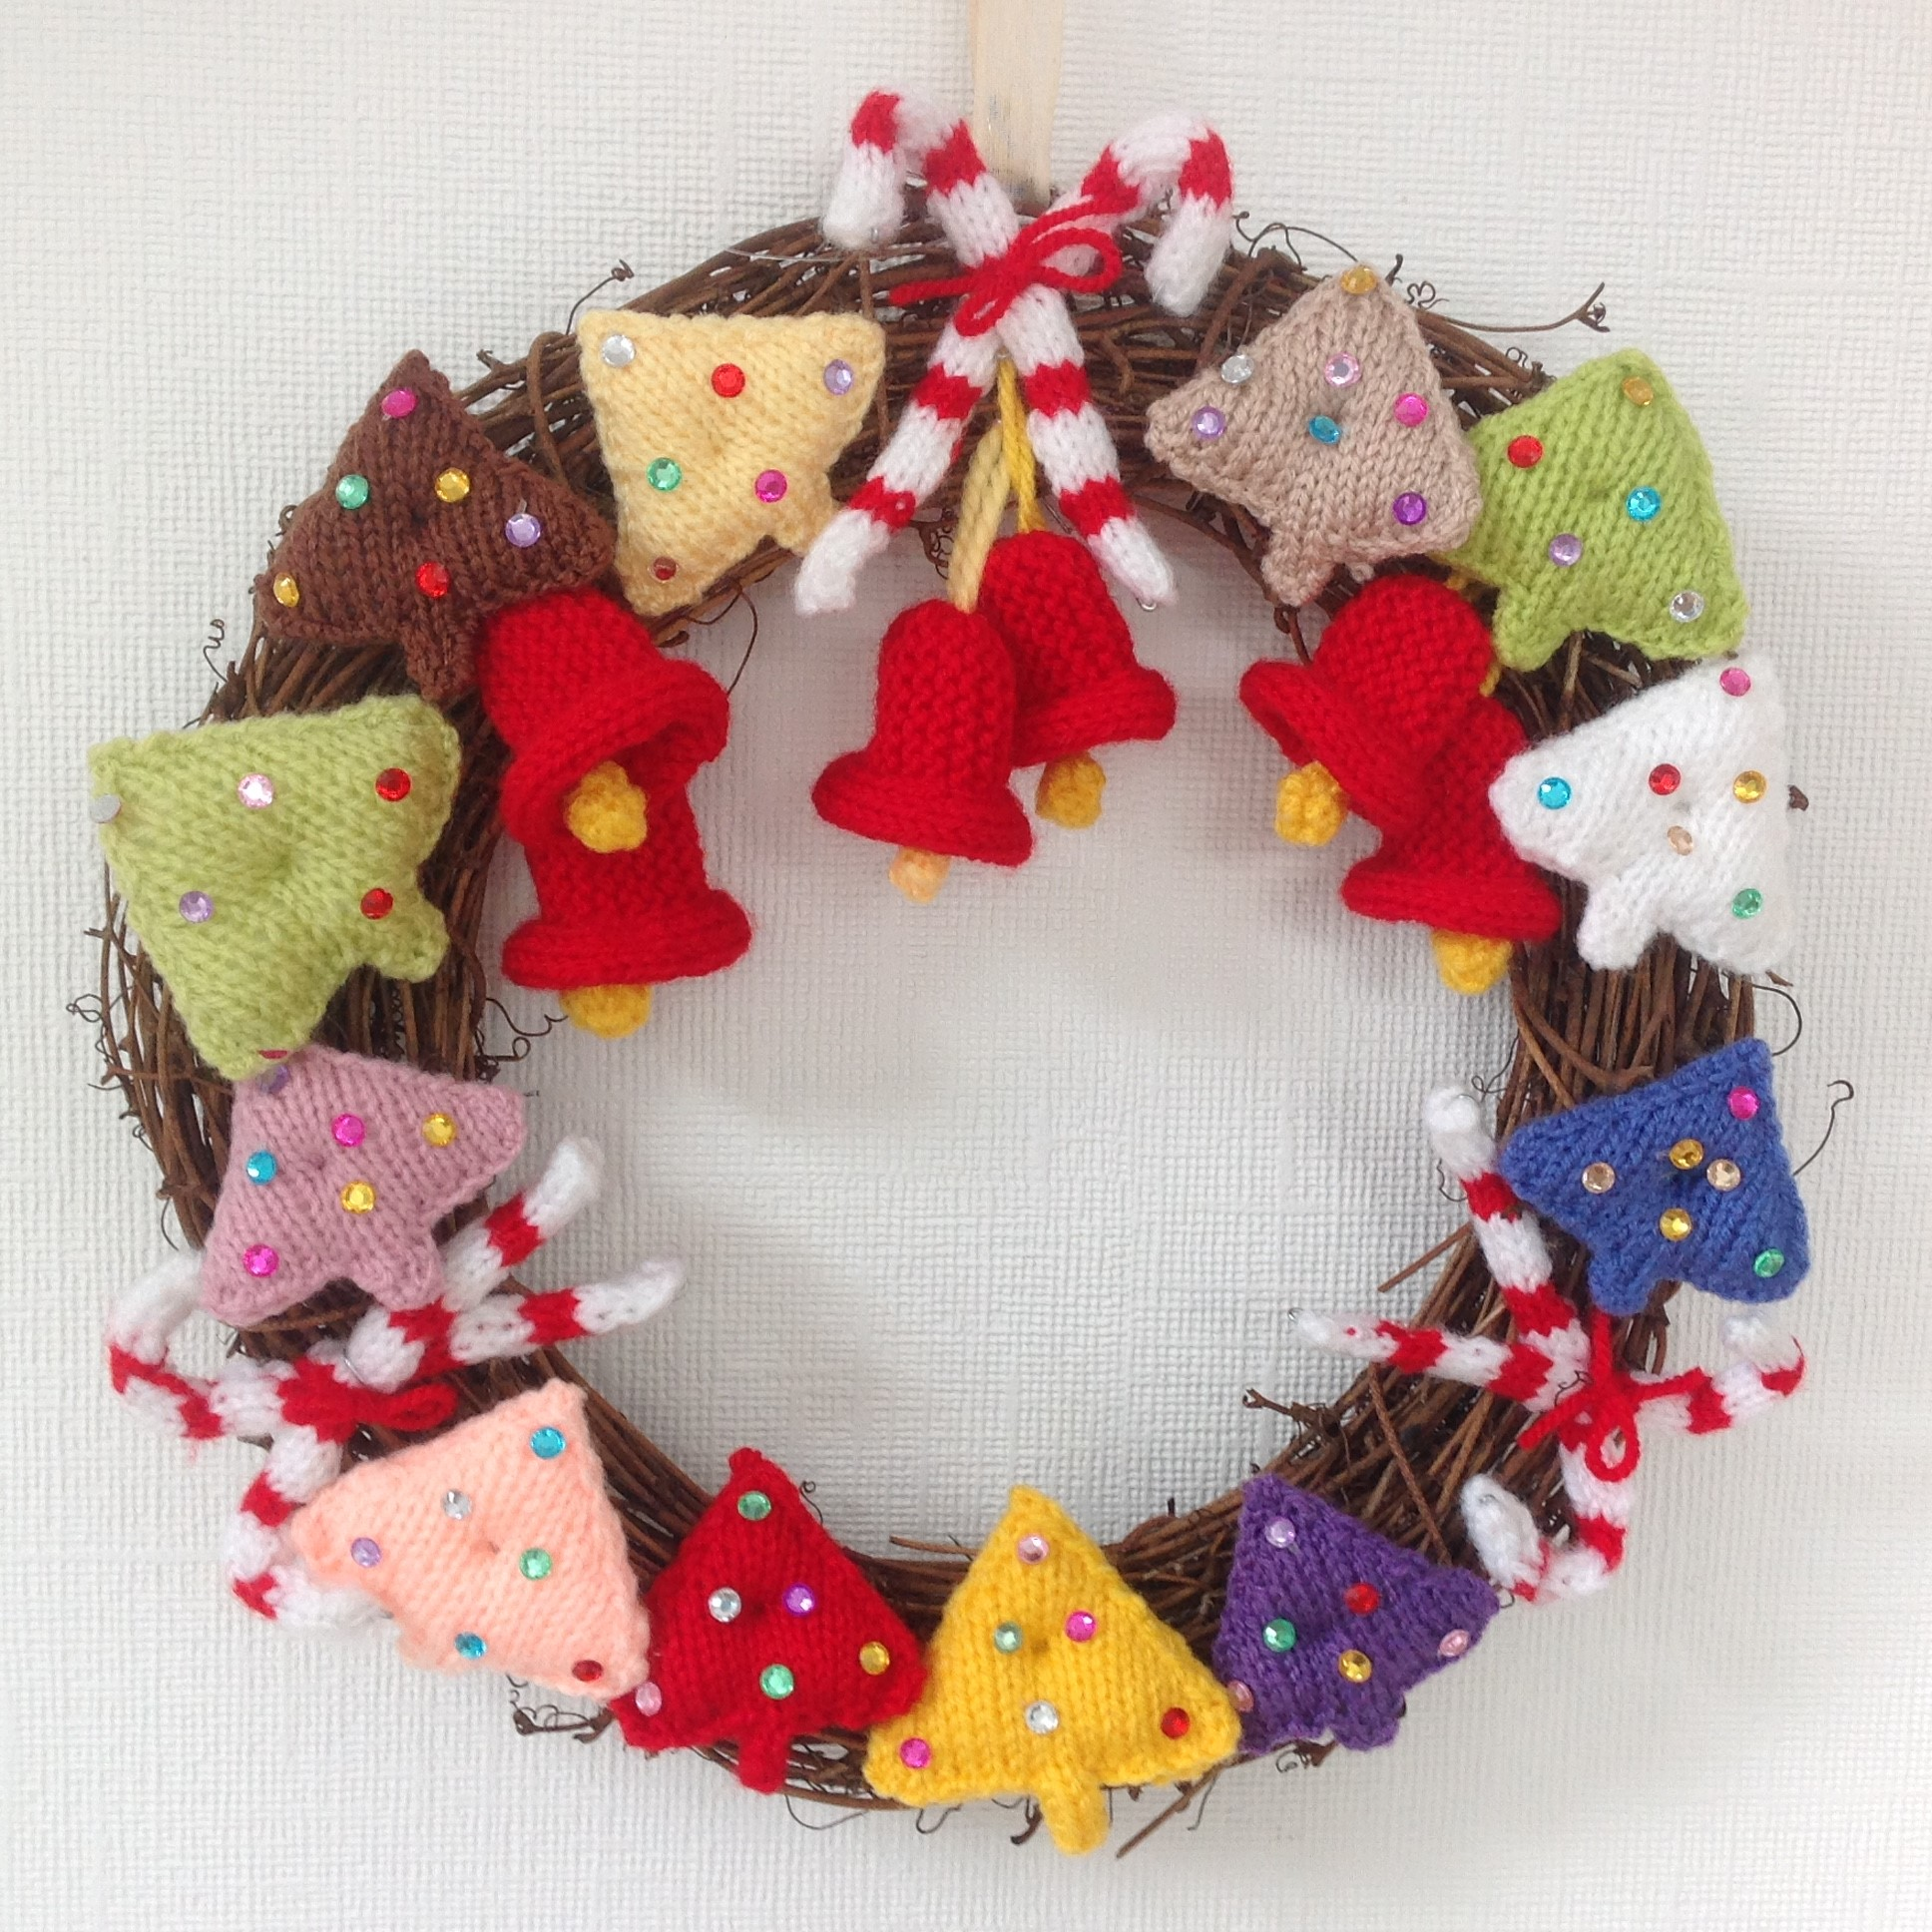 A Festive Christmas Wreath